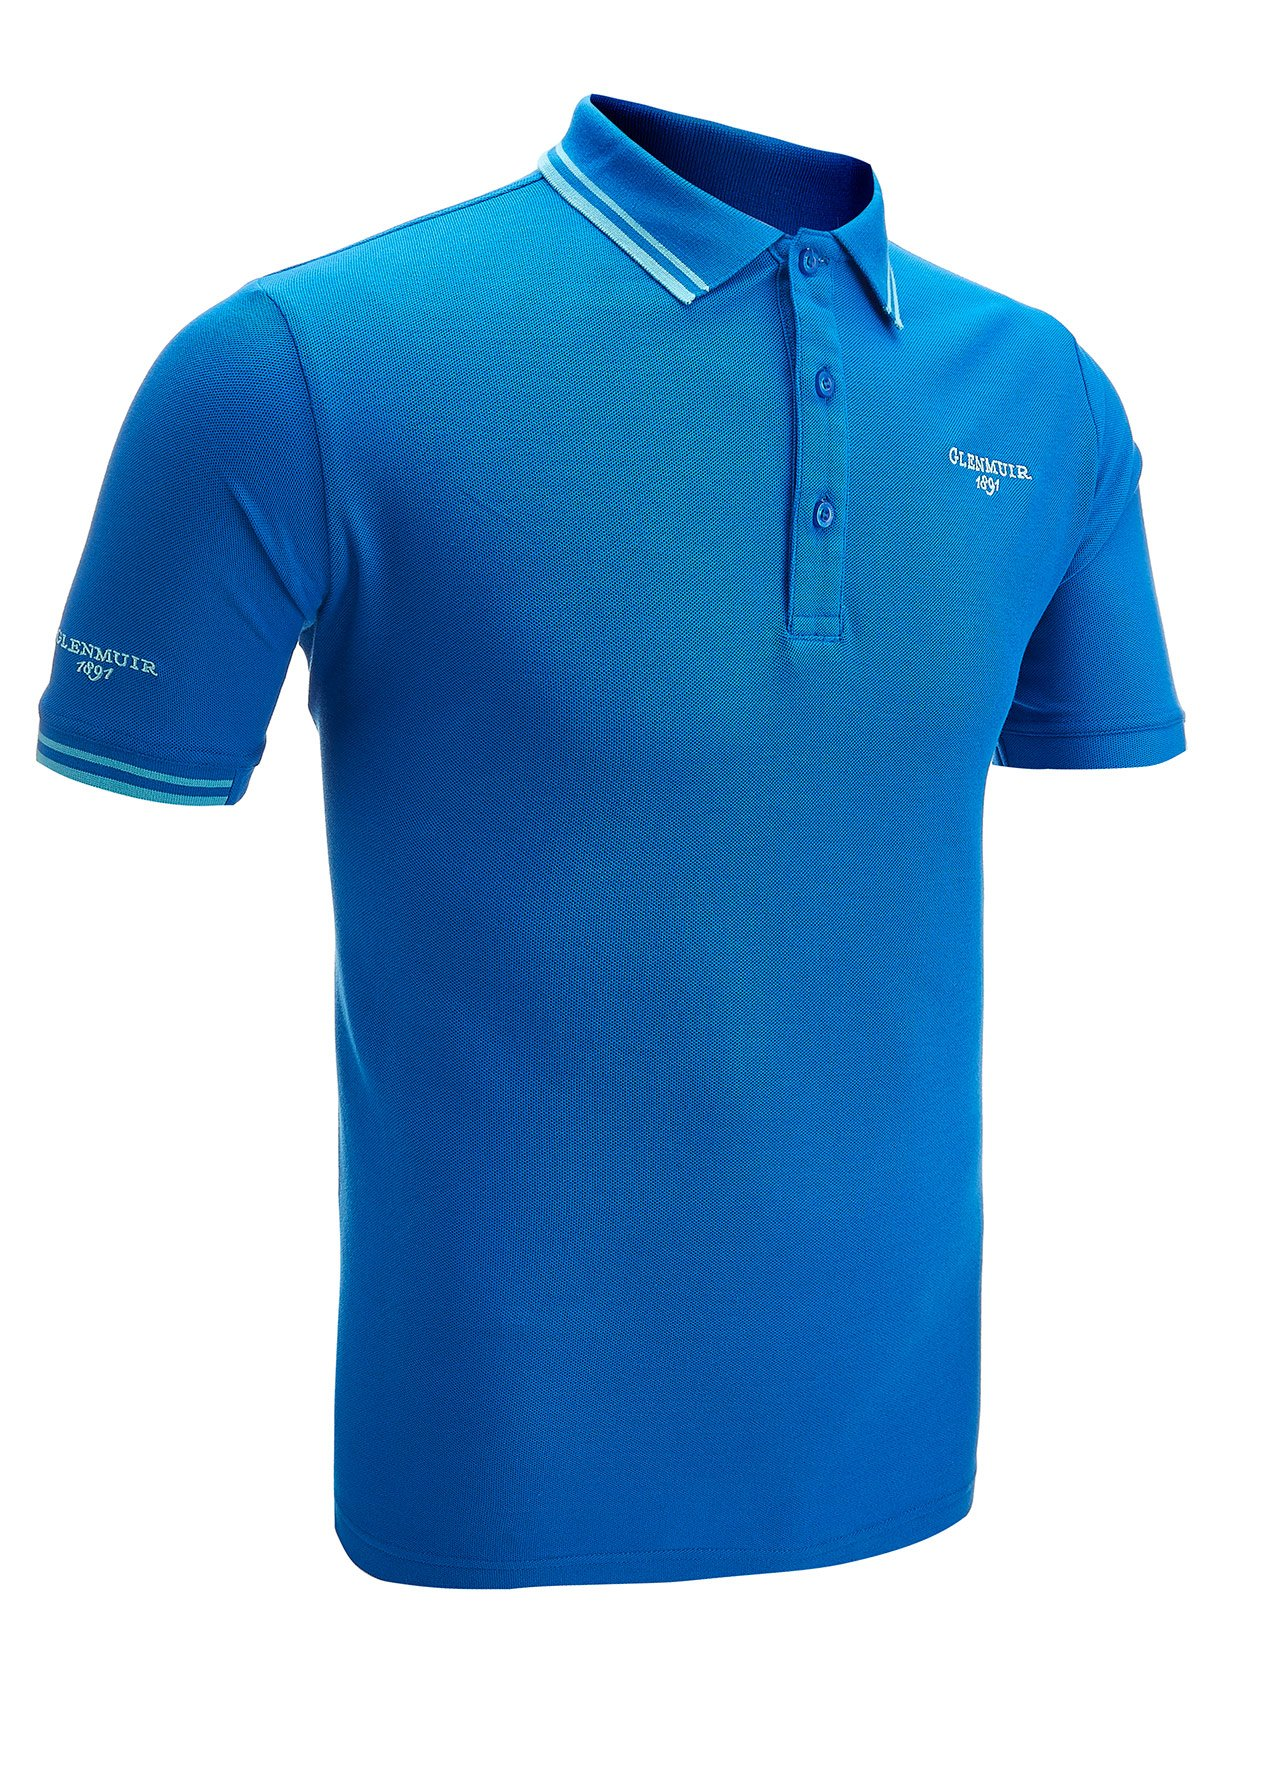 glenmuir mens tipped collar sports golf polo shirt top ebay